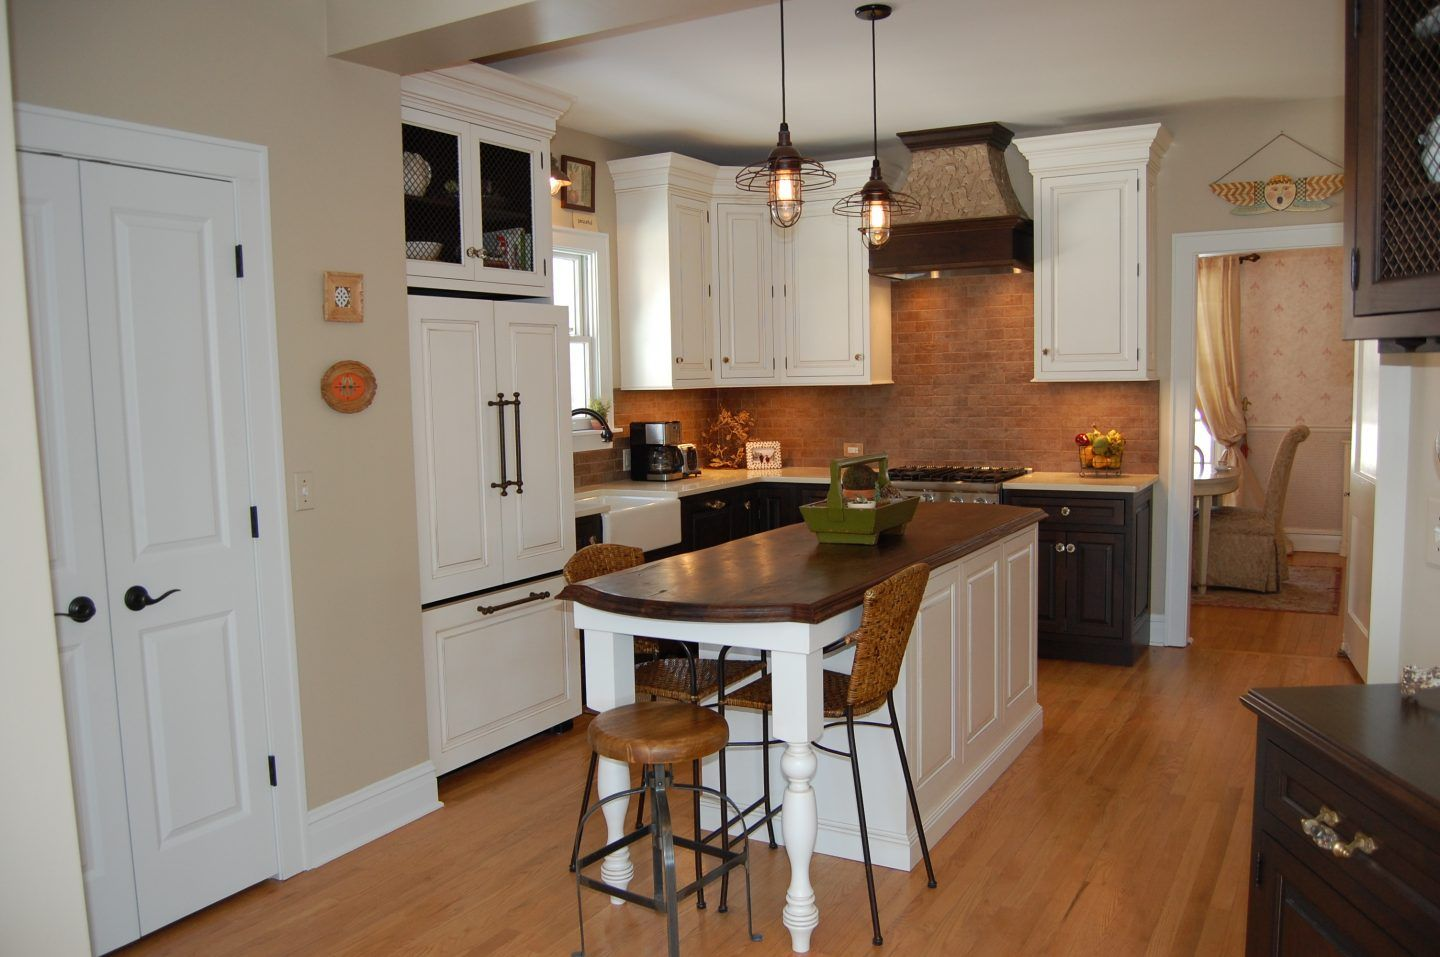 Kitchen Kitchenand With Seating For Seatsive Sixour Table White Seats Four Movable 4kitche Narrow Kitchen Island Kitchen Design Small Moveable Kitchen Island,Fall Blooming Perennials Zone 4